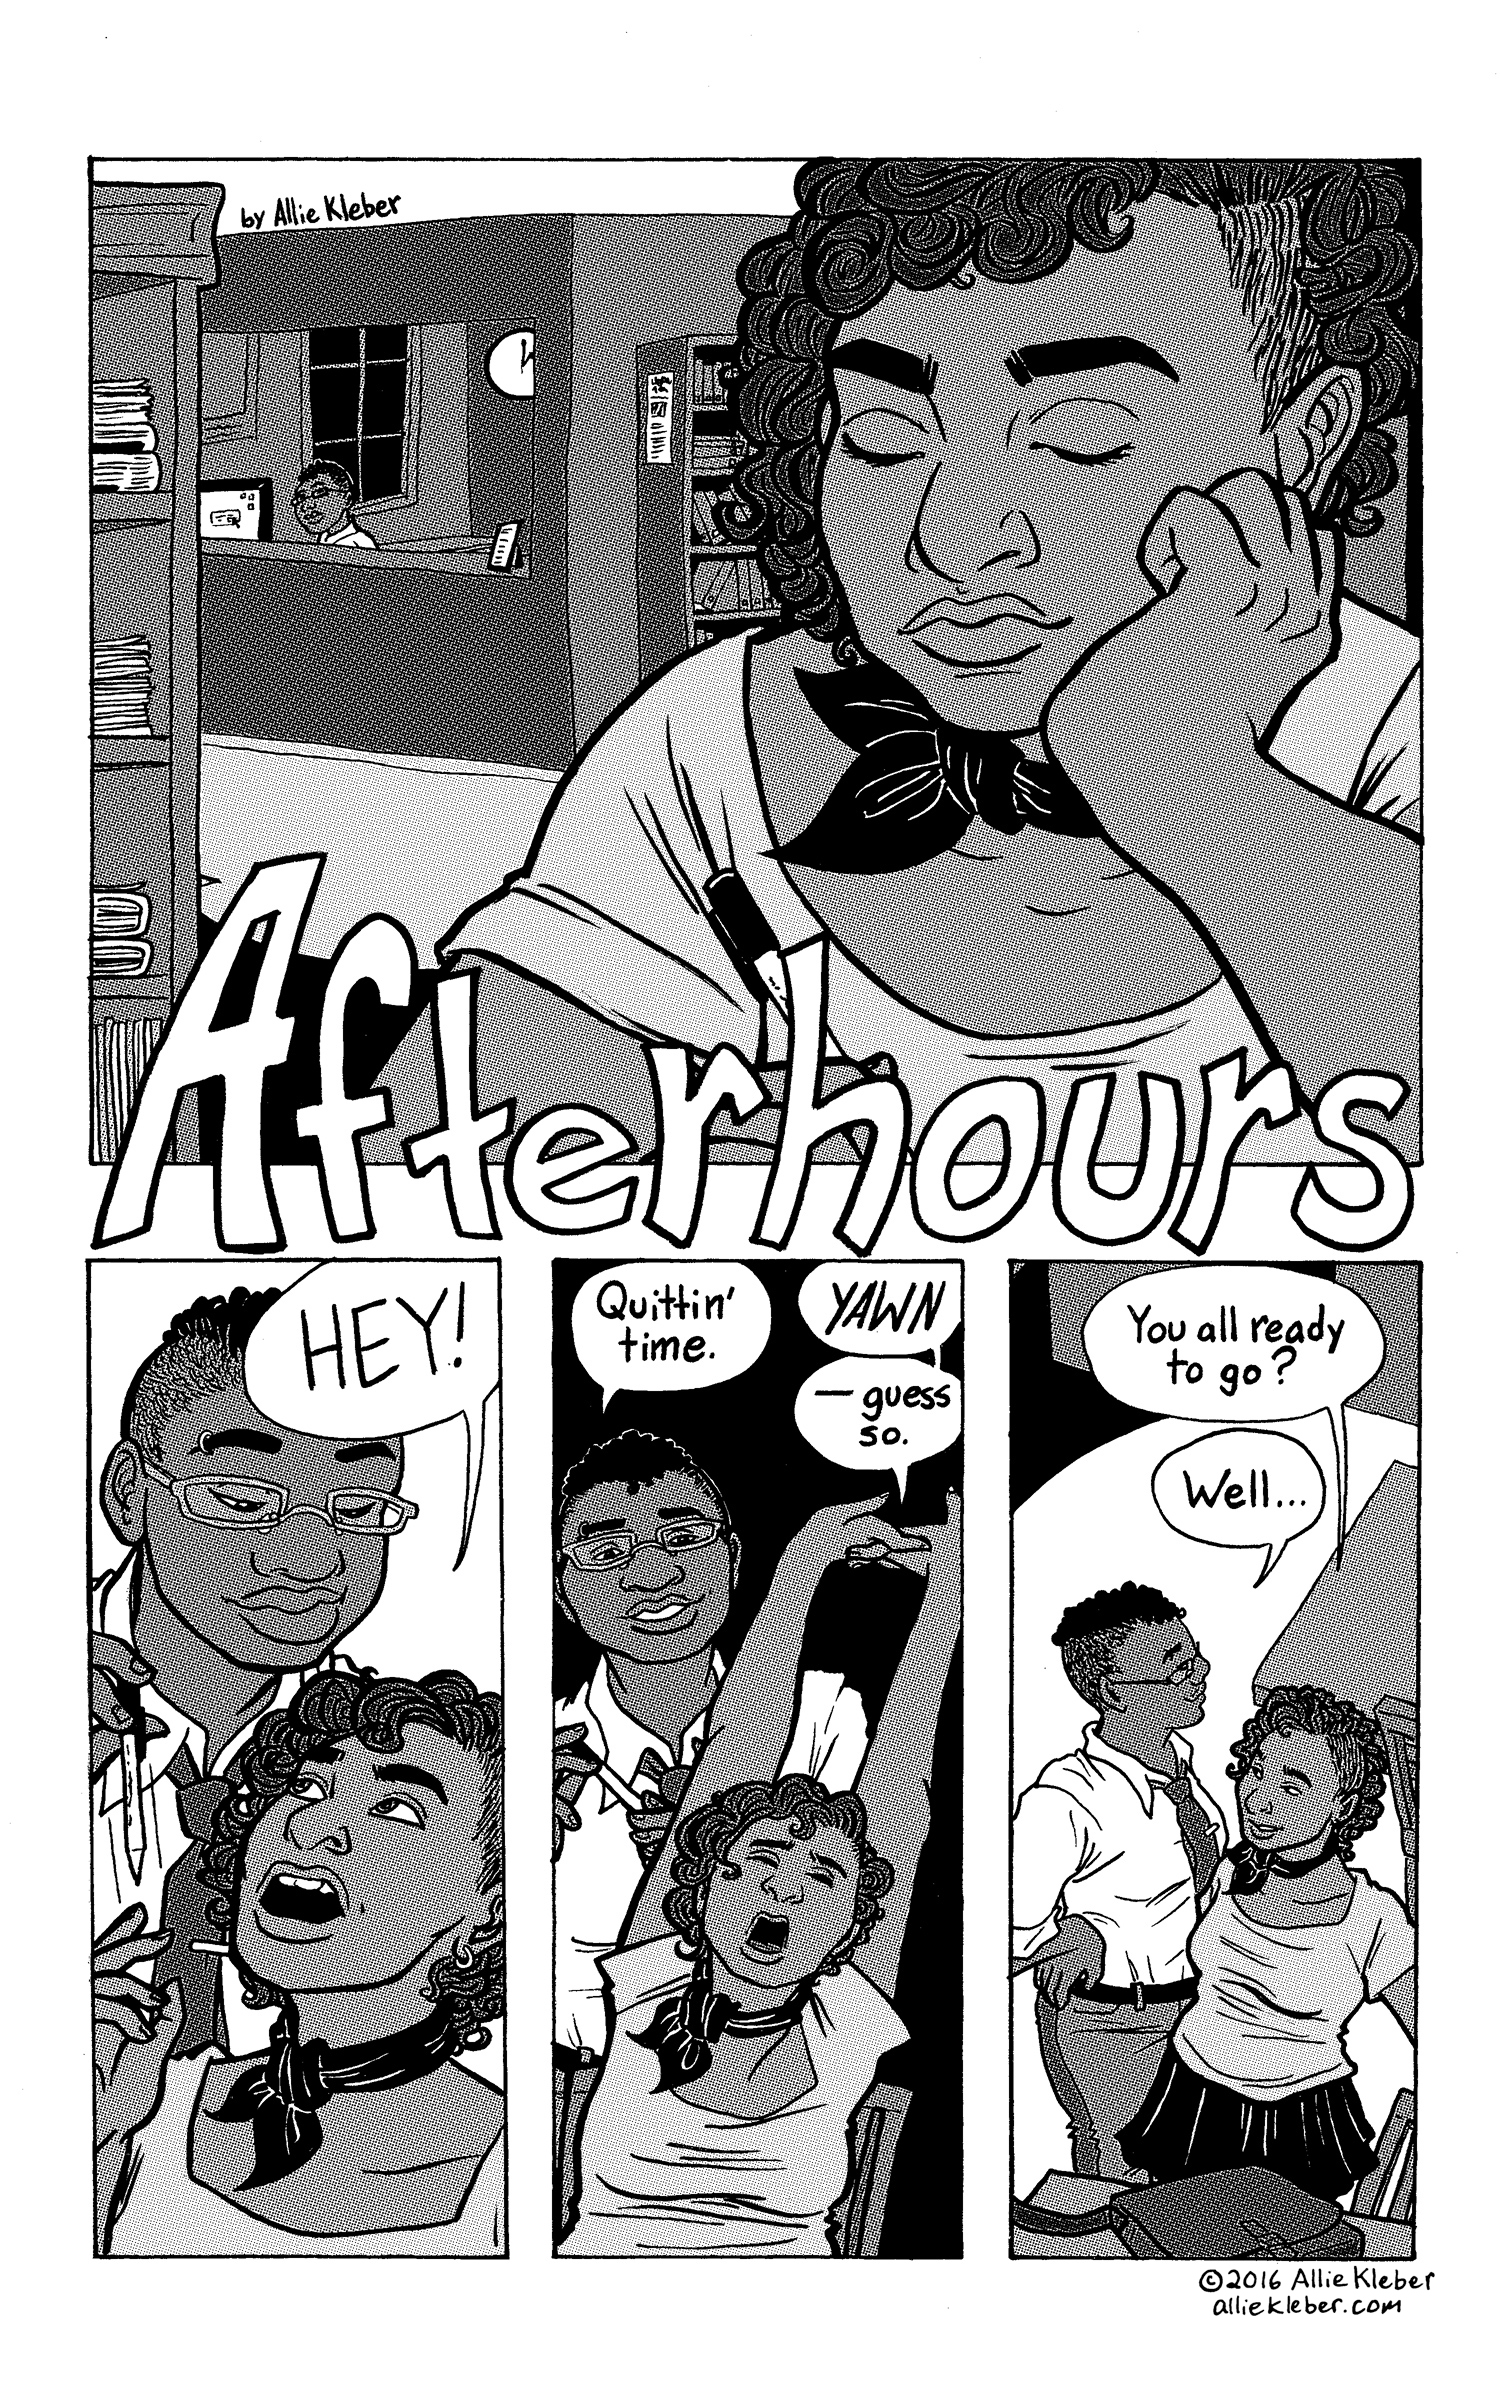 """""""Afterhours"""" is a short piece of erotica created for   Erotic Synergy  , an anthology of erotic fiction & poetry by women and nonbinary people. (Mine is the only comic featured in the book.) NOT SAFE FOR WORK."""